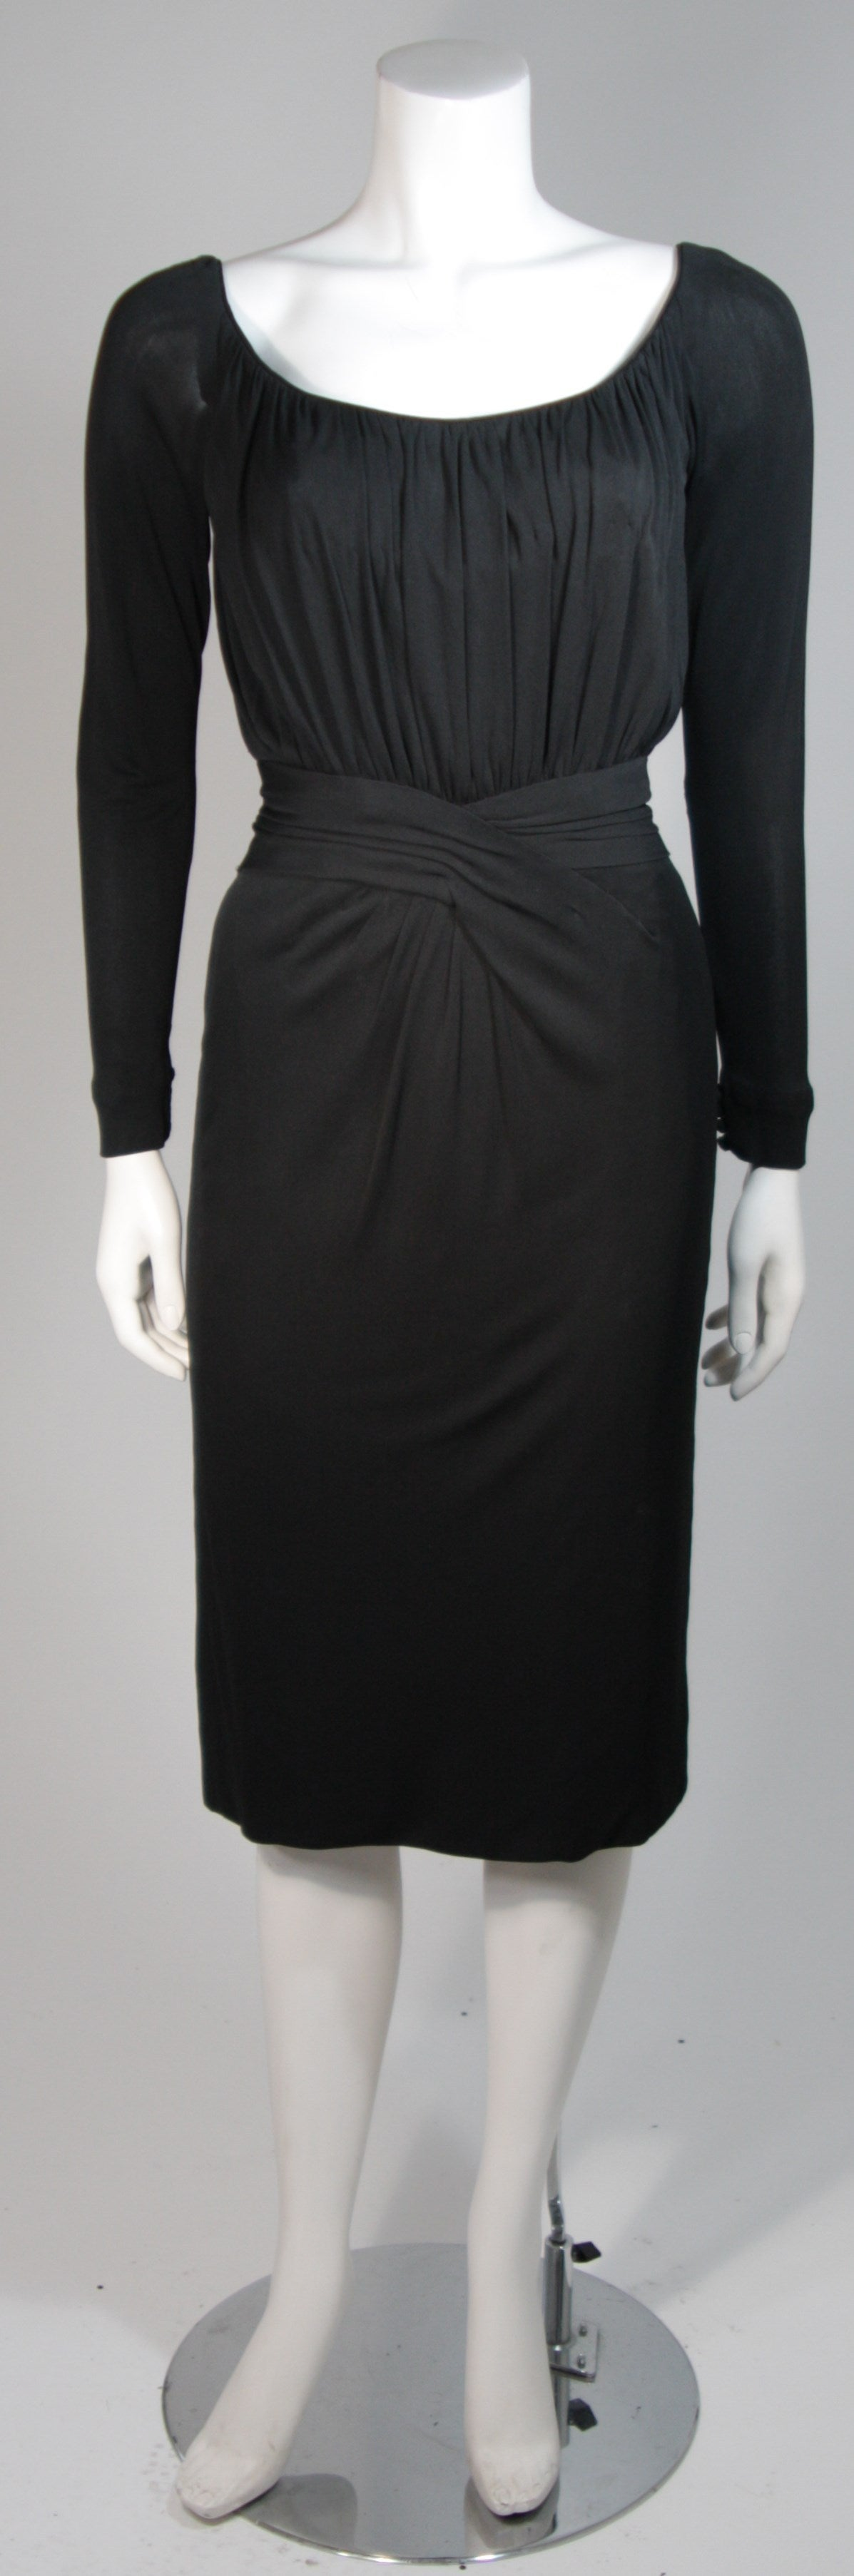 Ceil Chapman Black Silk Crepe Cocktail Dress with Gathers Size 4-6 2